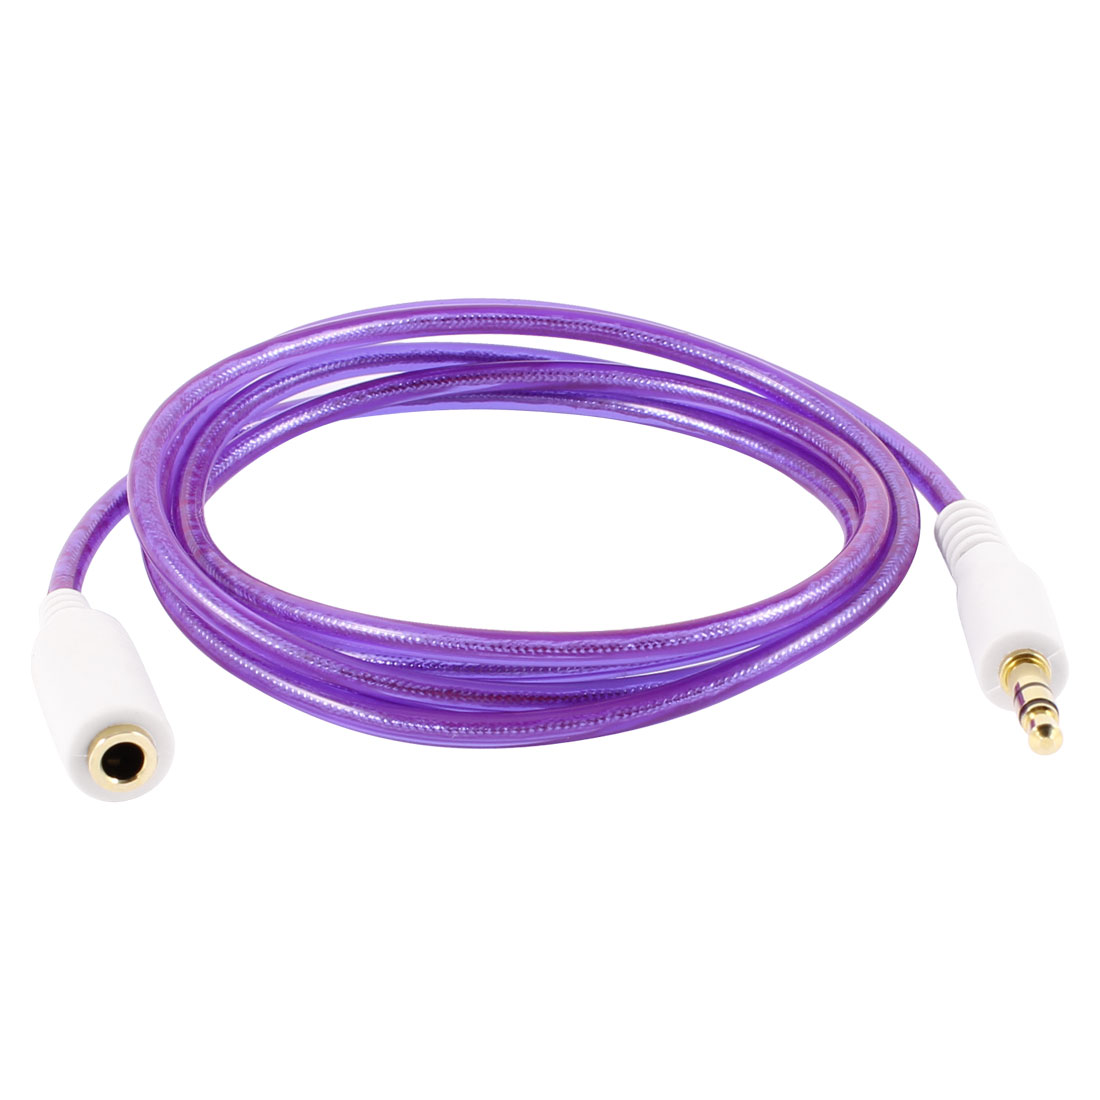 Purple 3.5mm Male to Female M/F Audio Cable Cord 1.06M for PC Mobile Phone Mp4